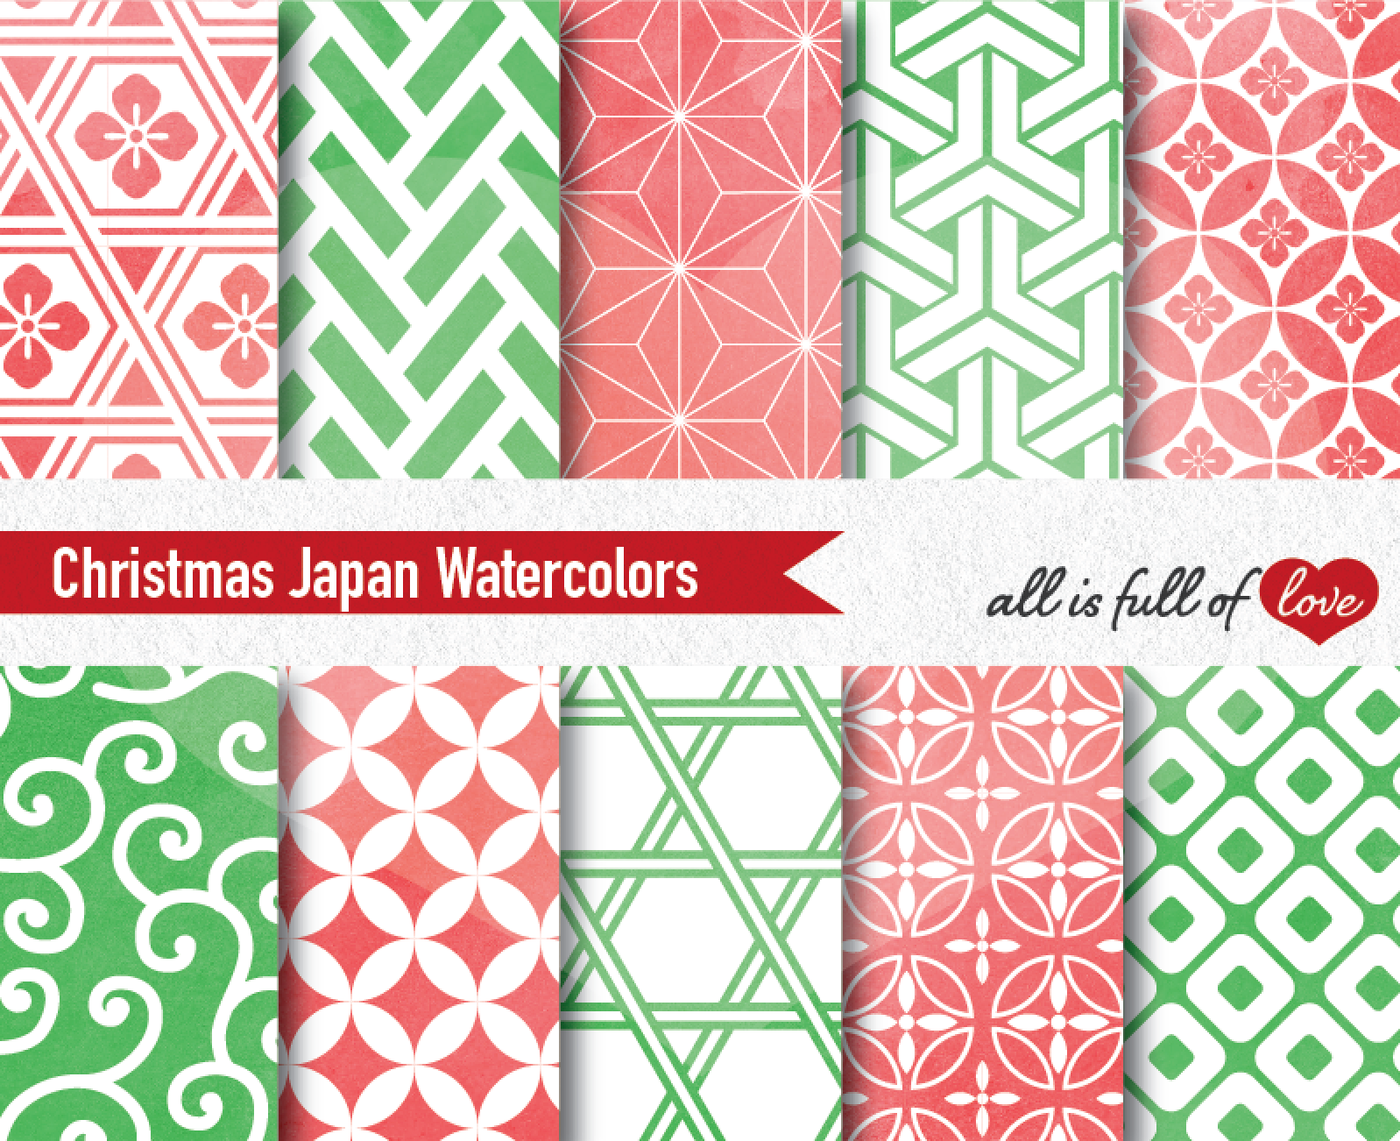 Christmas Watercolor Patterns Seamless Japanese Graphics Red And